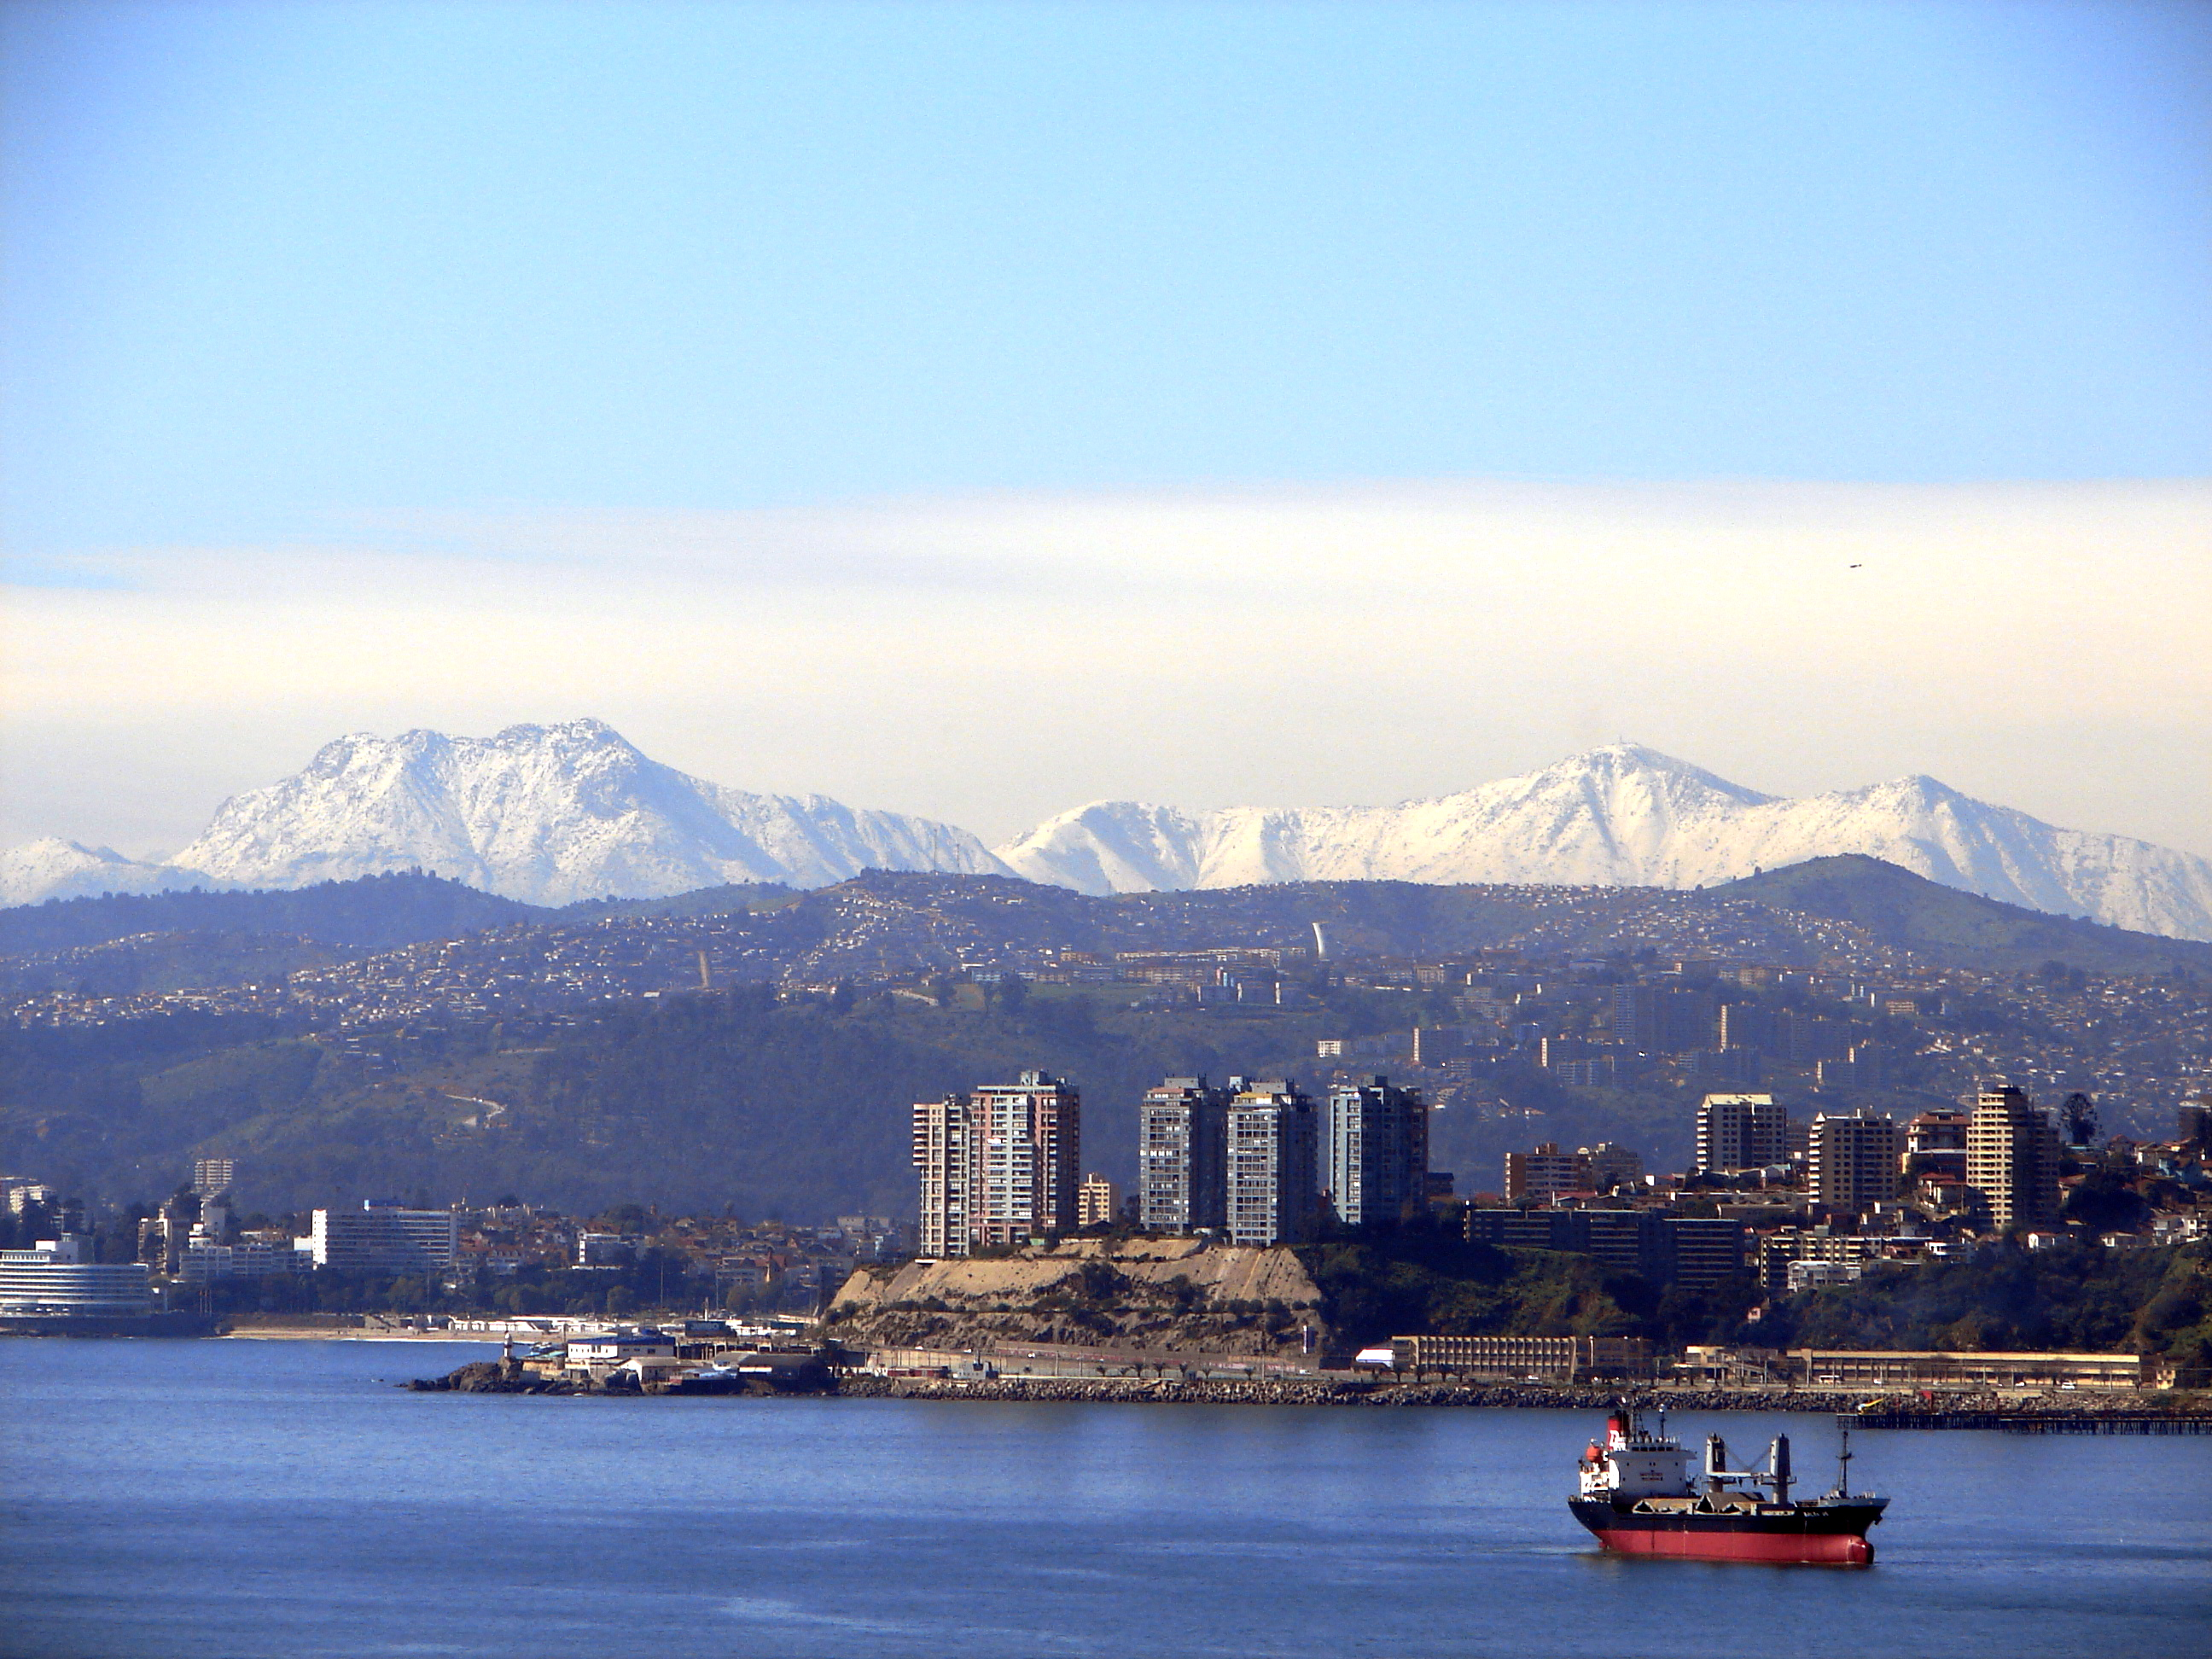 View Of Valpara  So And Vi  A Del Mar With The Andes In The